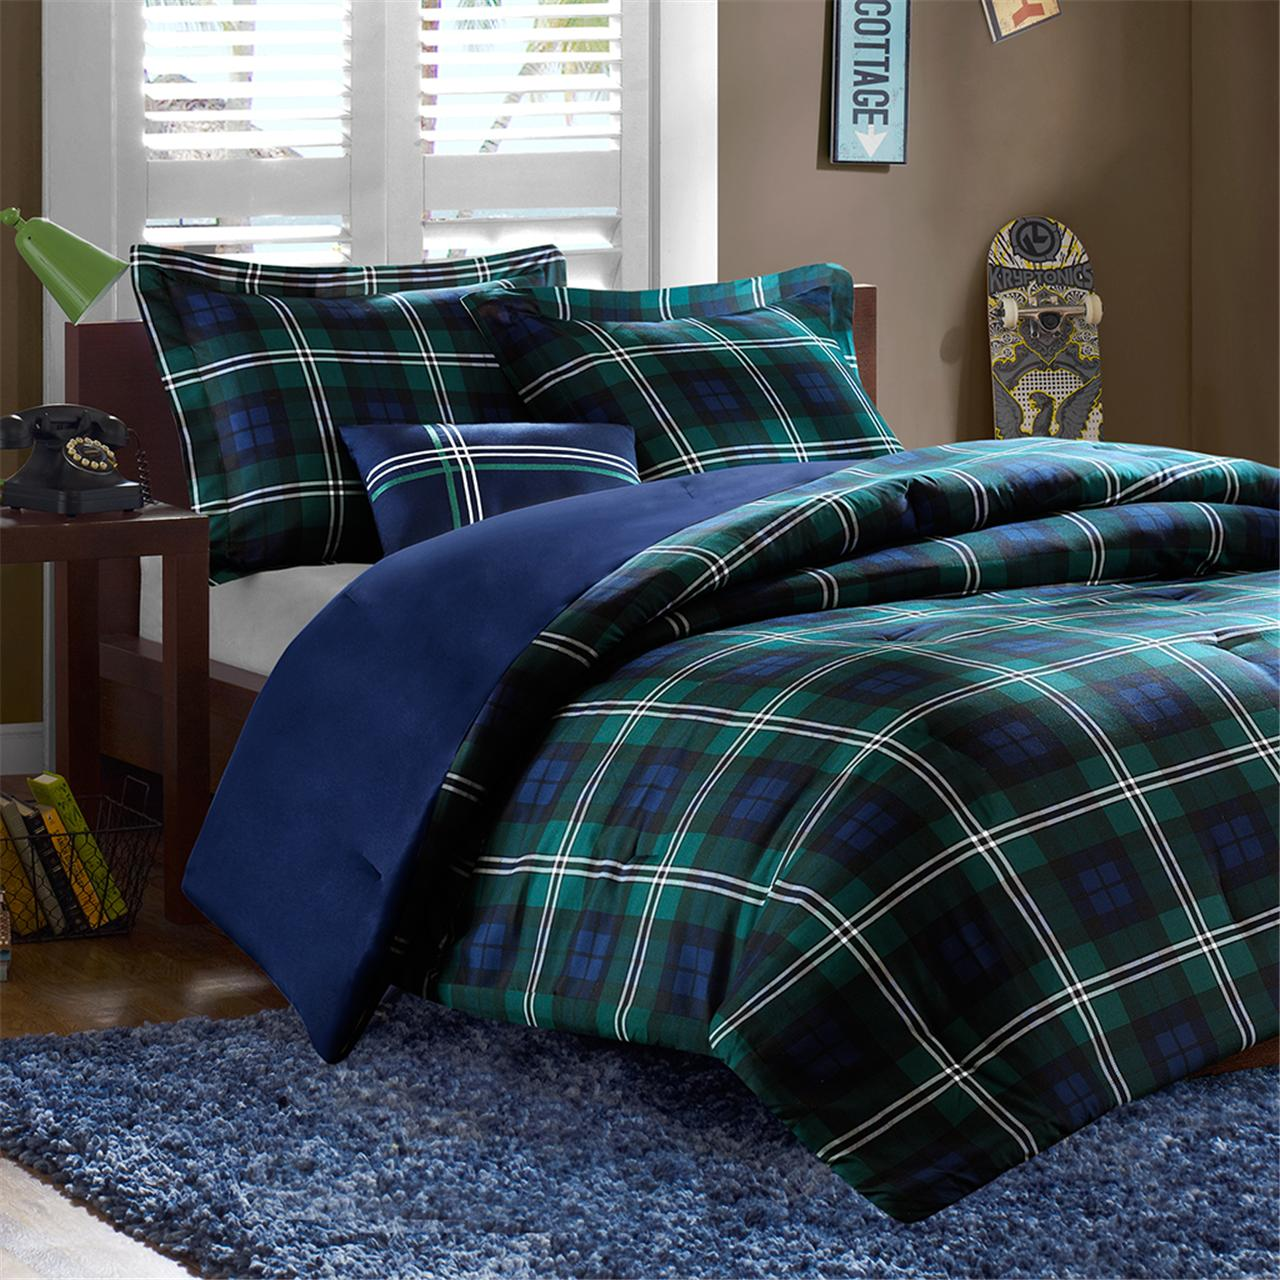 chair covers and linens in madison heights mi best bean bag for gaming brody comforter set zone olliix